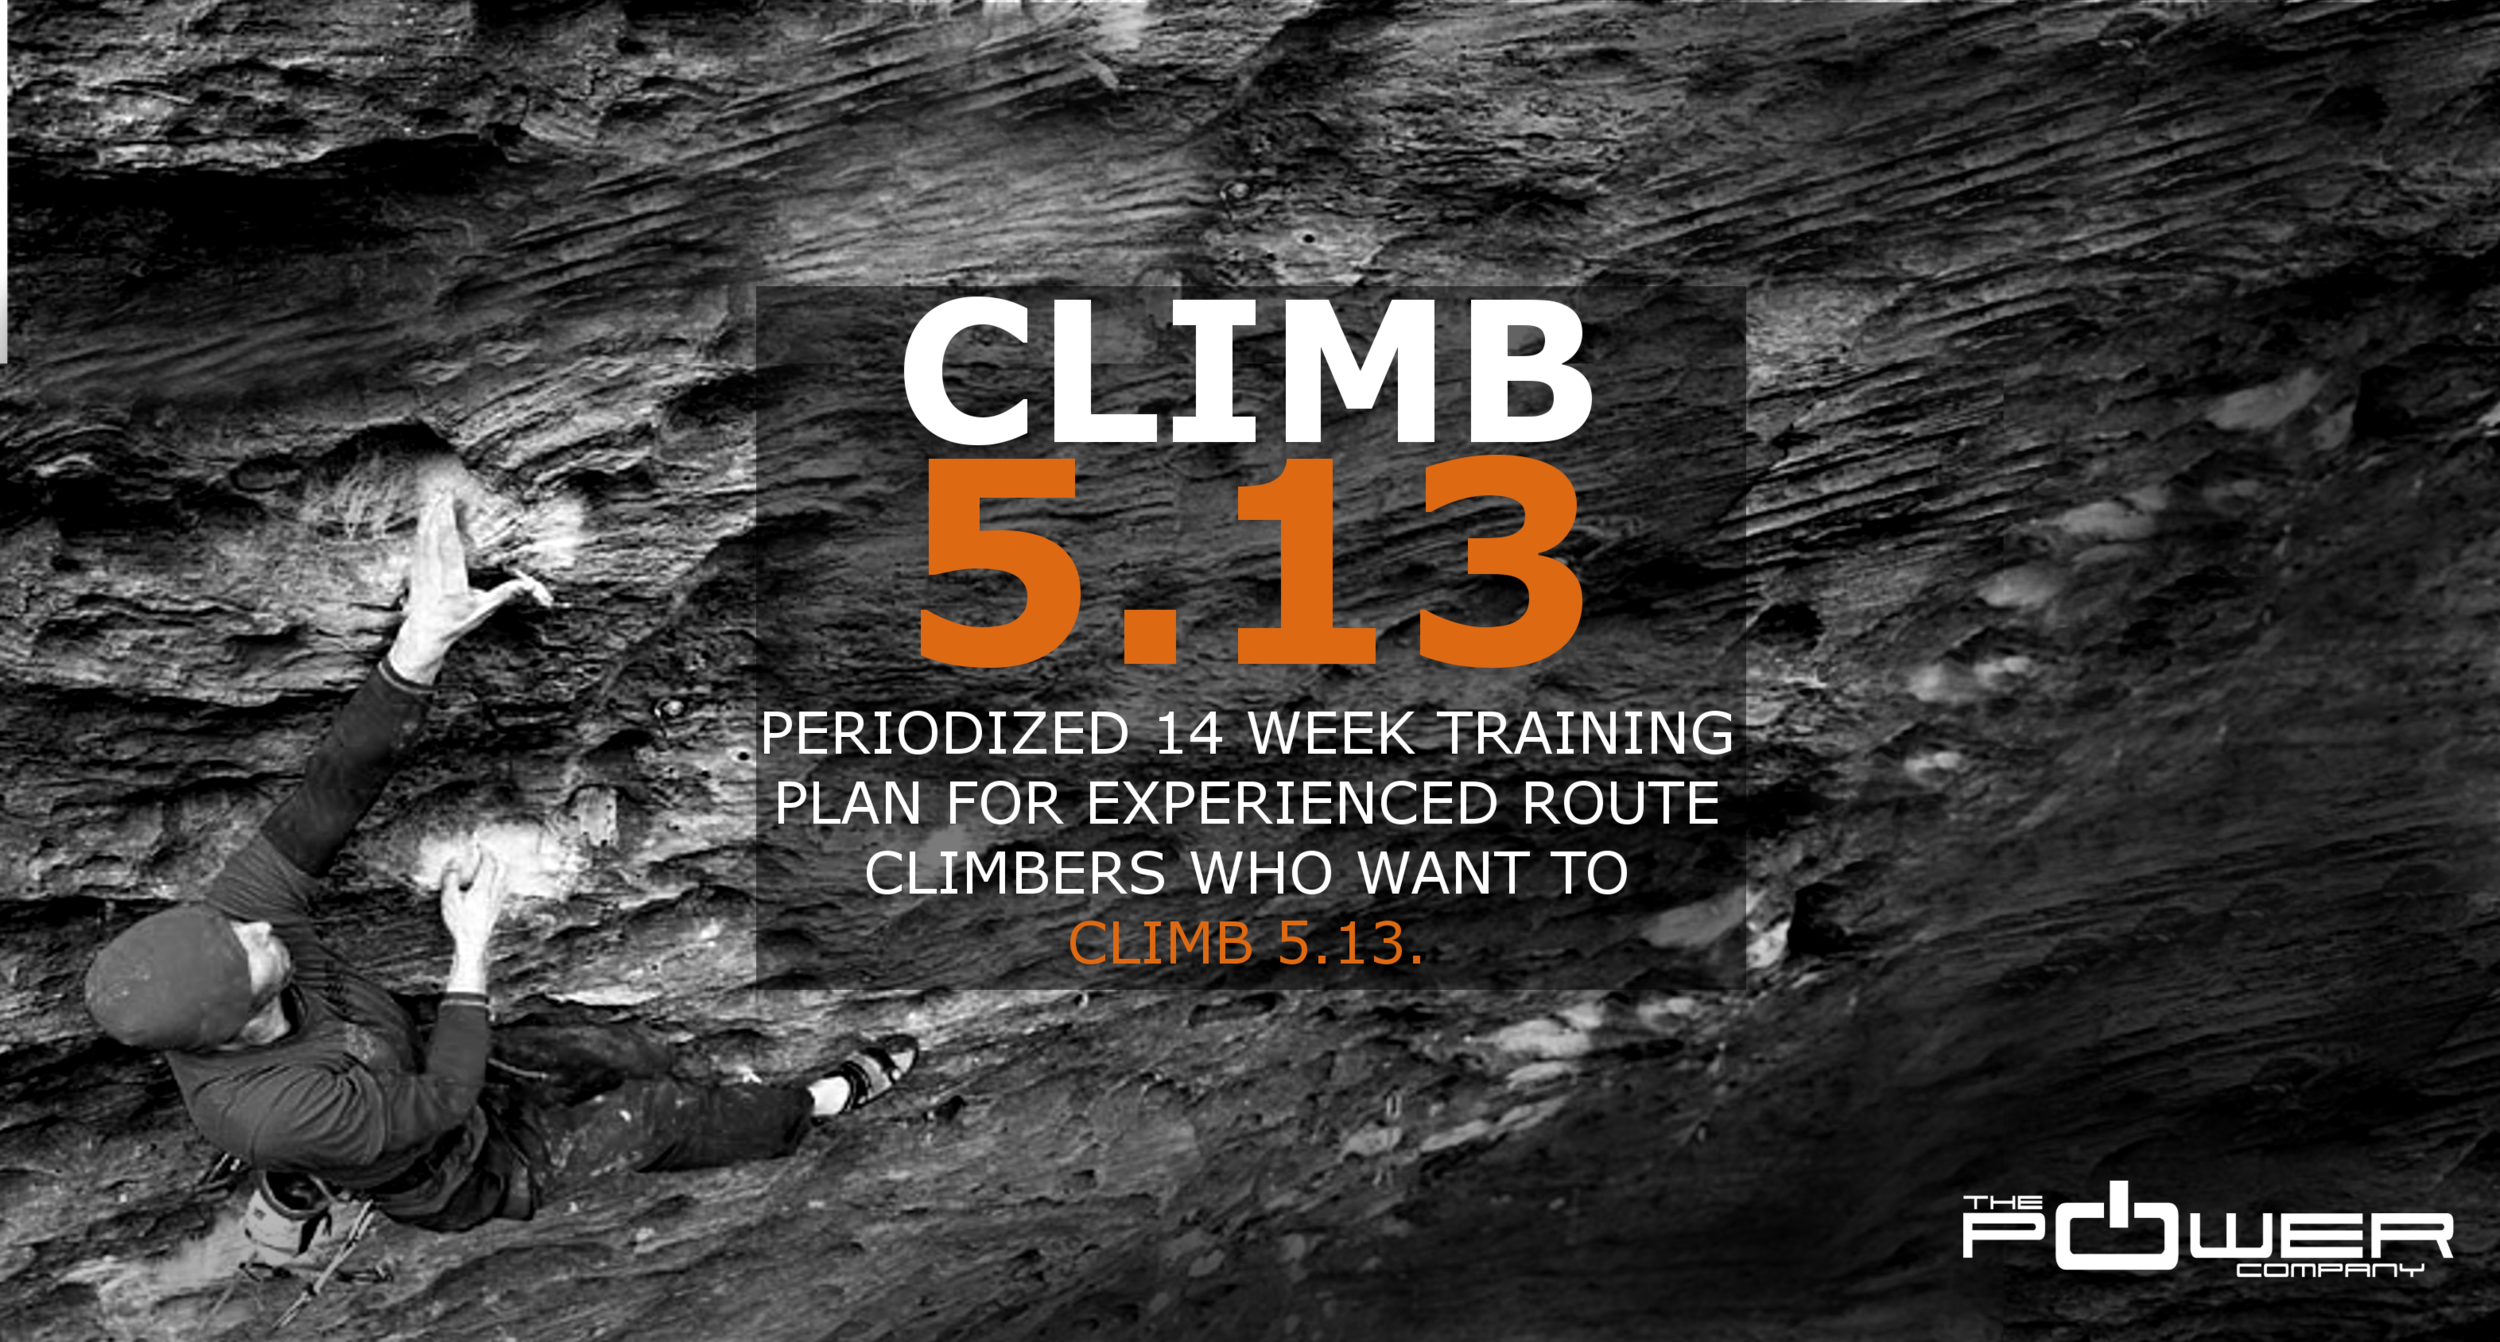 $20  Click image to learn more about CLIMB 5.13